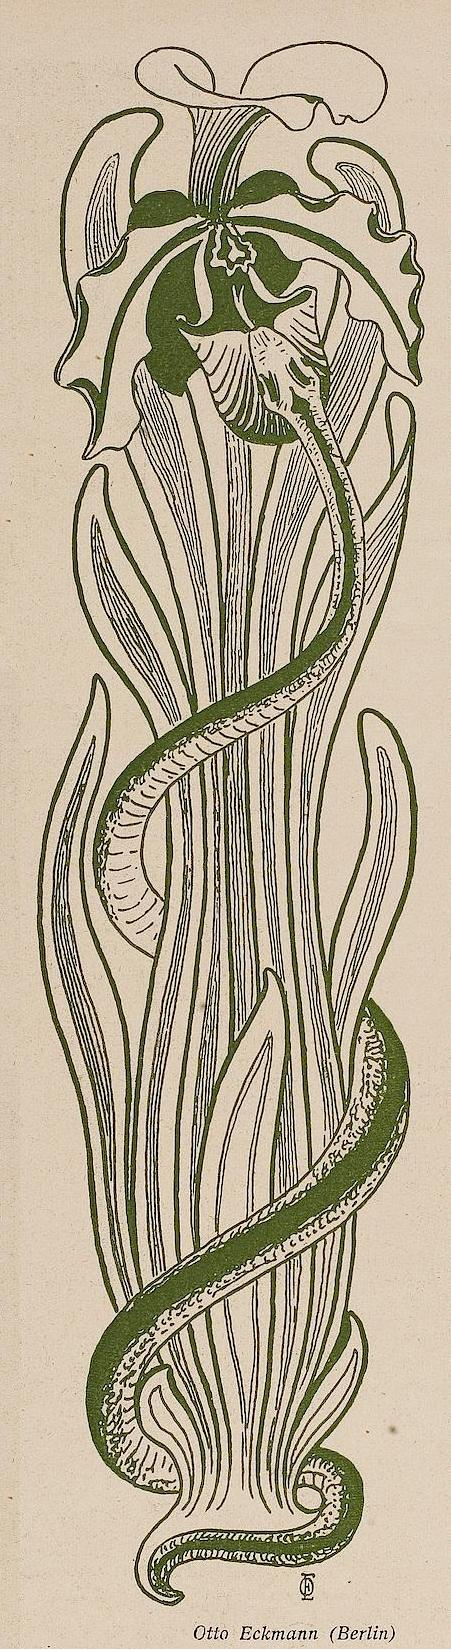 Jugend, 1900 Ornament by Otto Eckmann